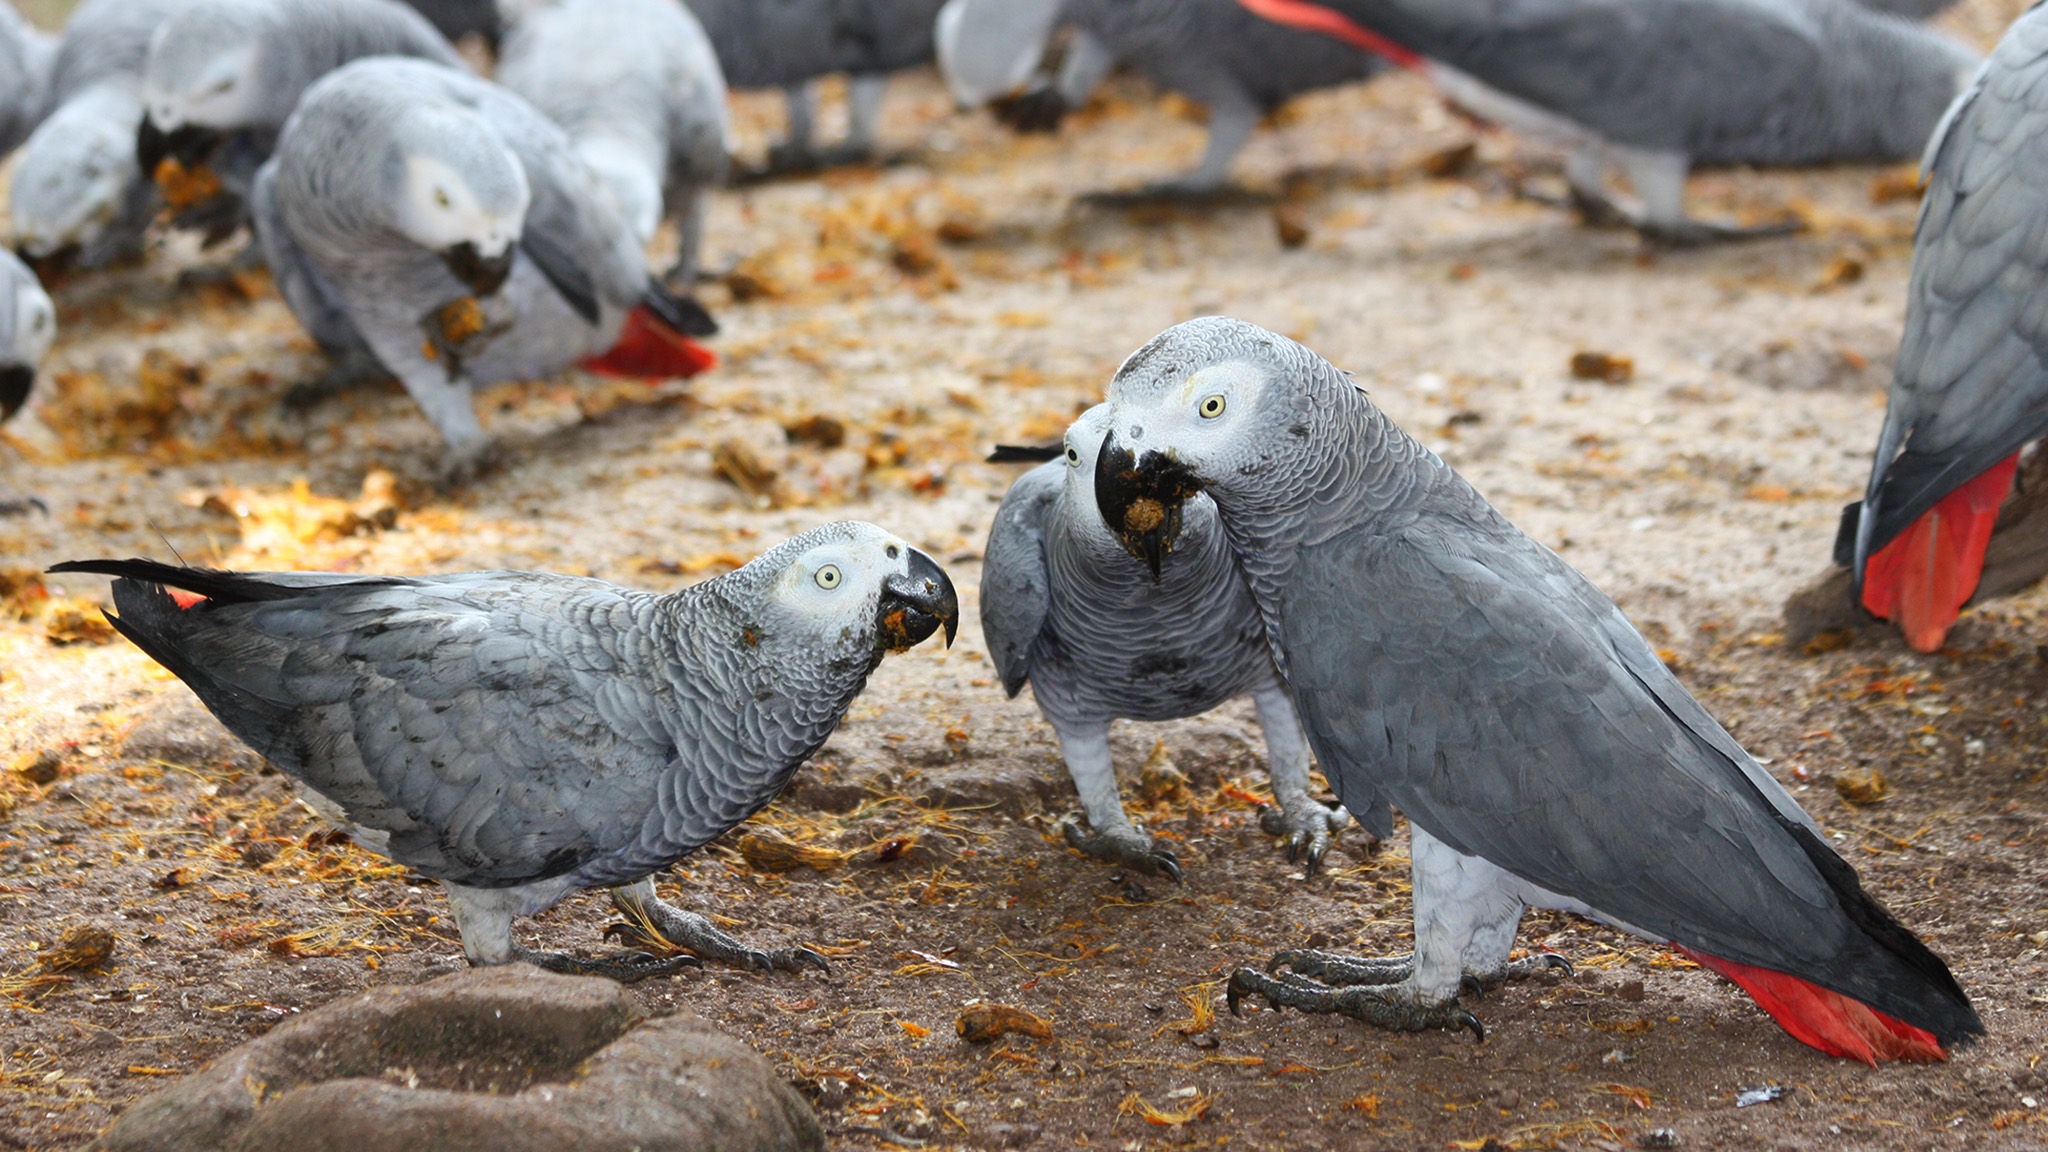 Saving the African grey parrot: the battle to beat the pet smugglers